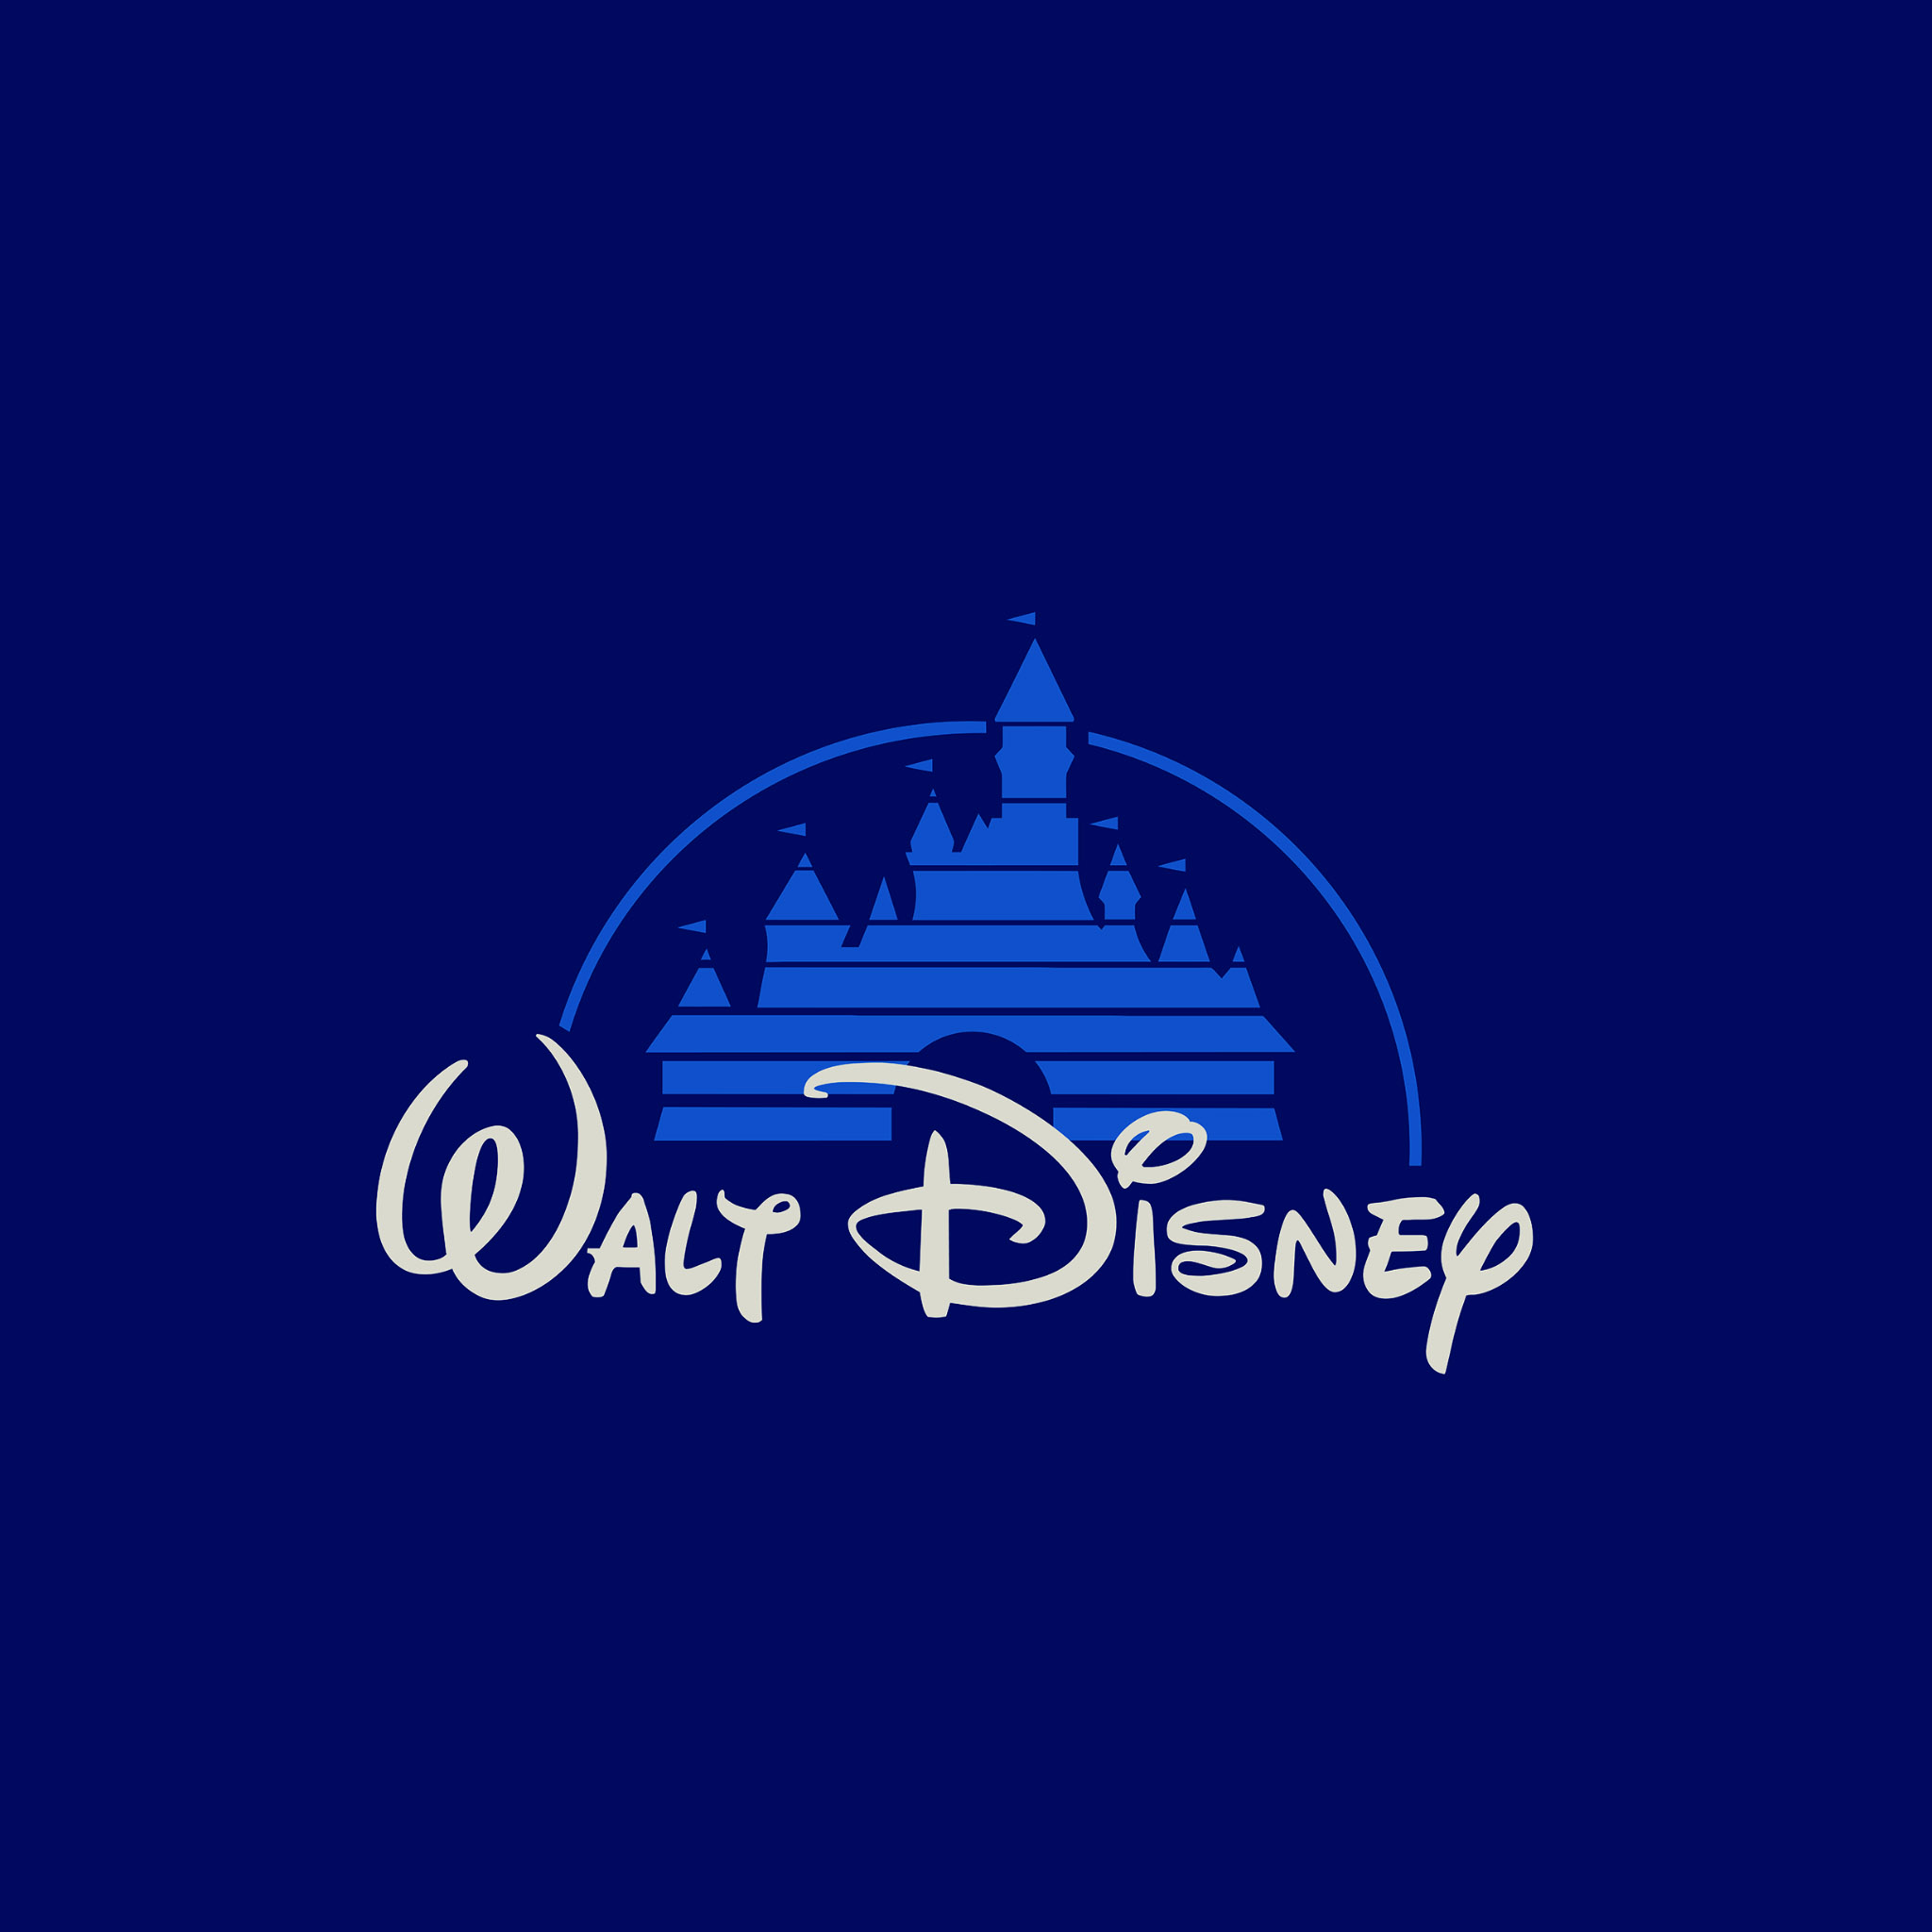 Disney Logo Wallpaper - WallpaperSafari